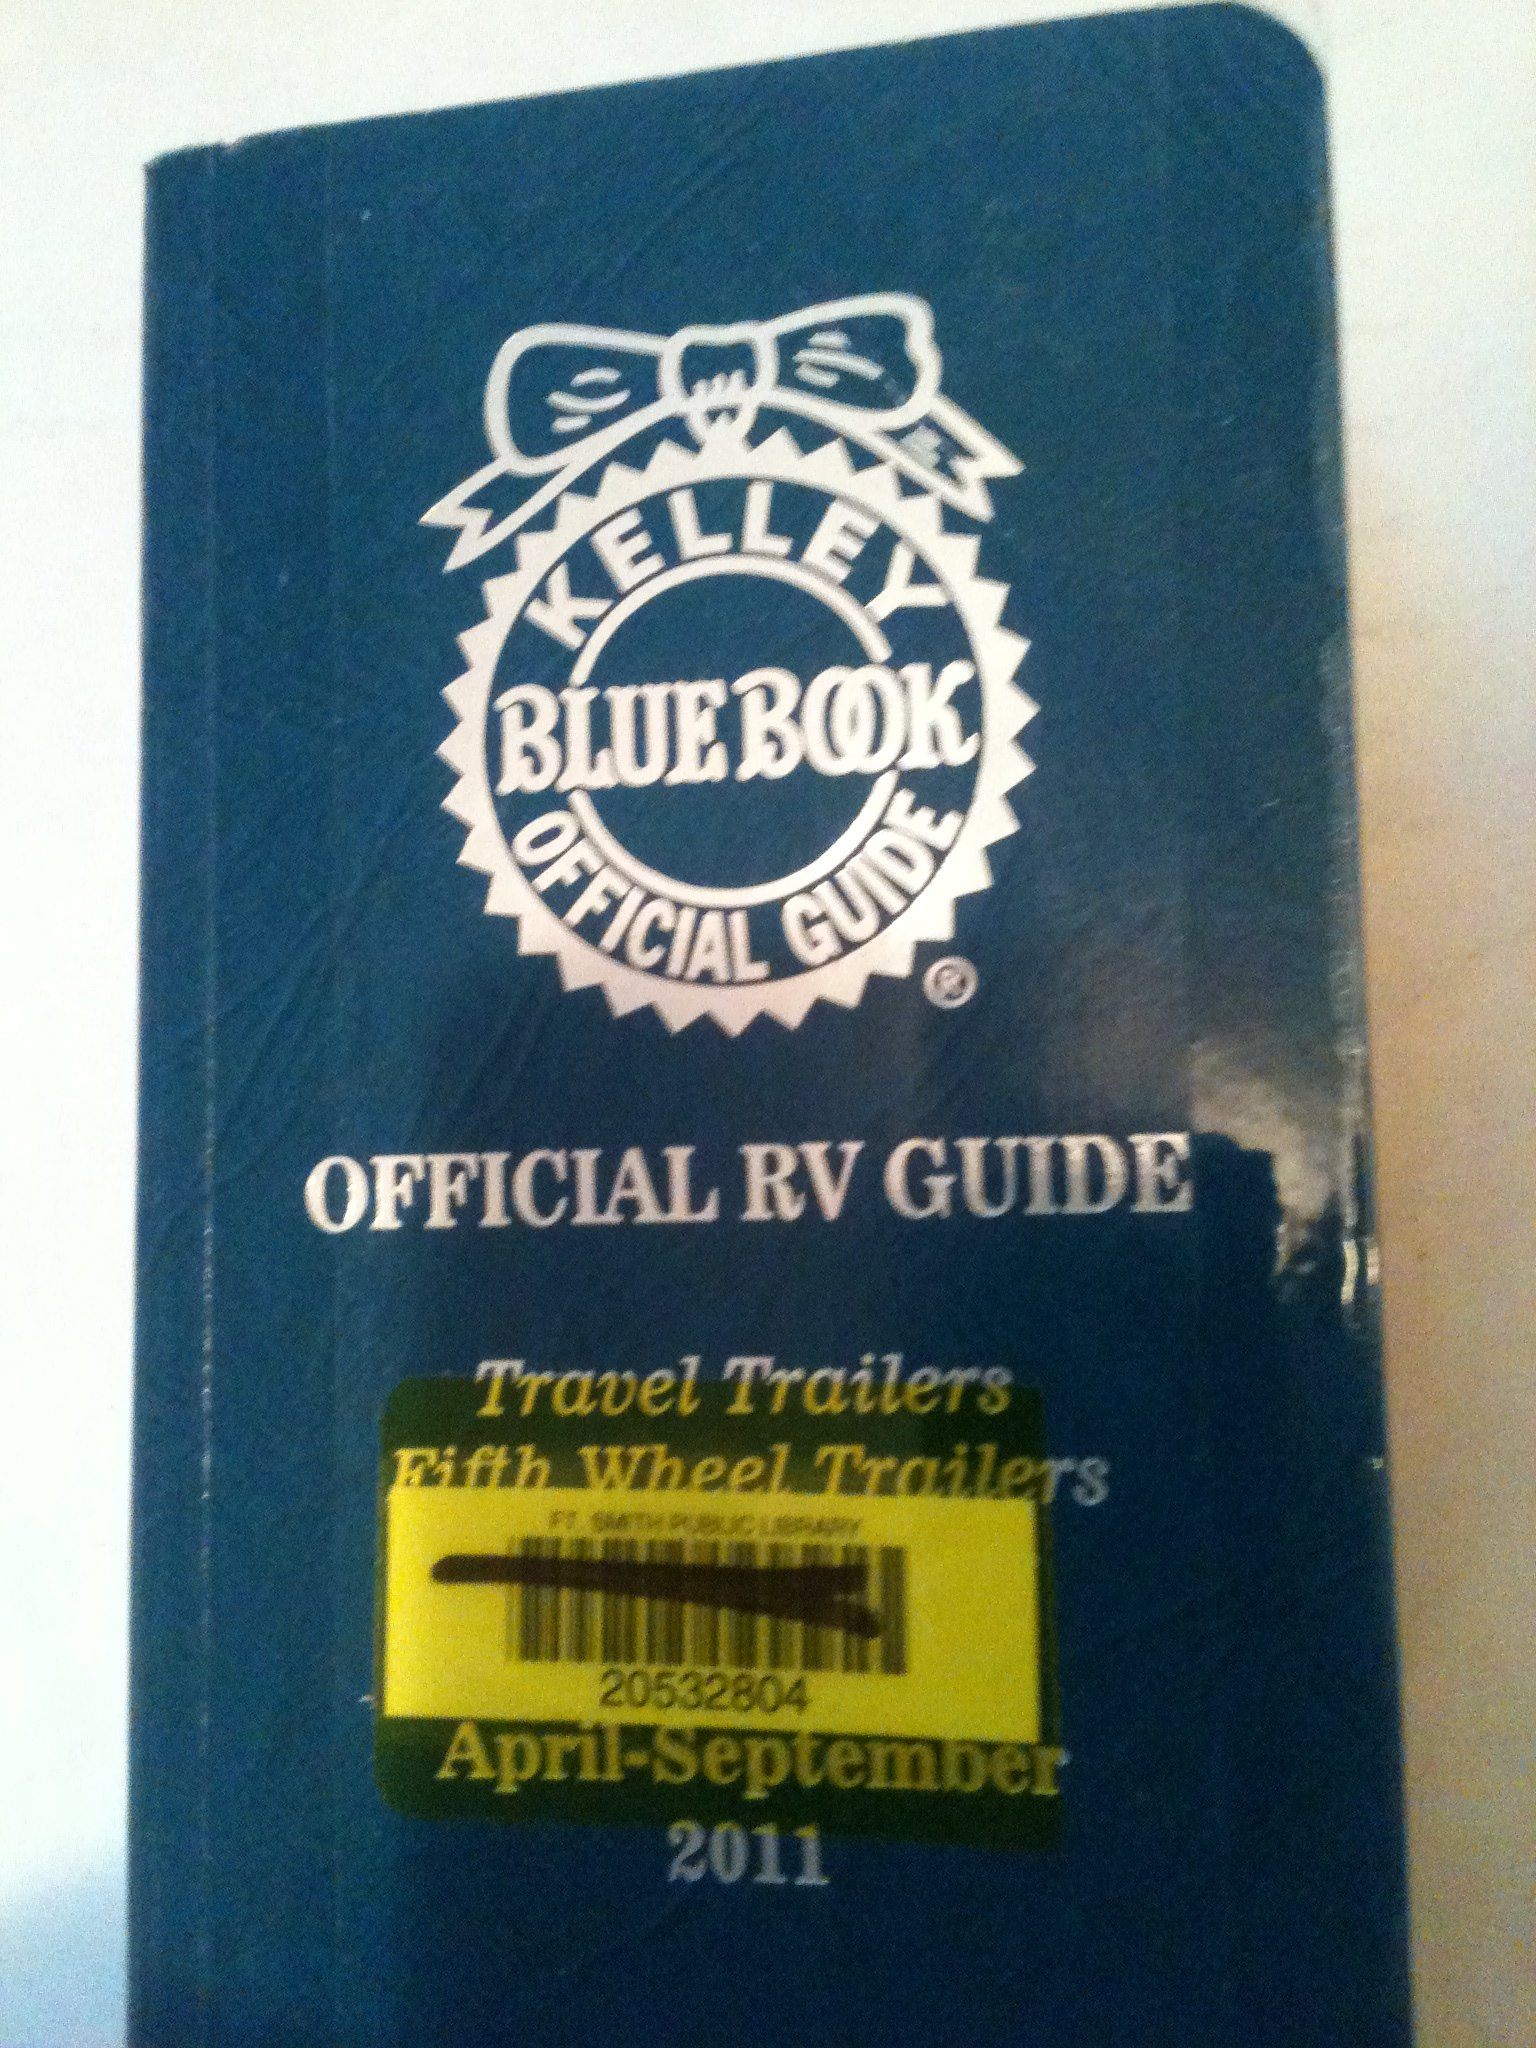 Kelley Blue Book For Rvs >> Kelley Blue Book Official Rv Guide Travel Trailers Fifth